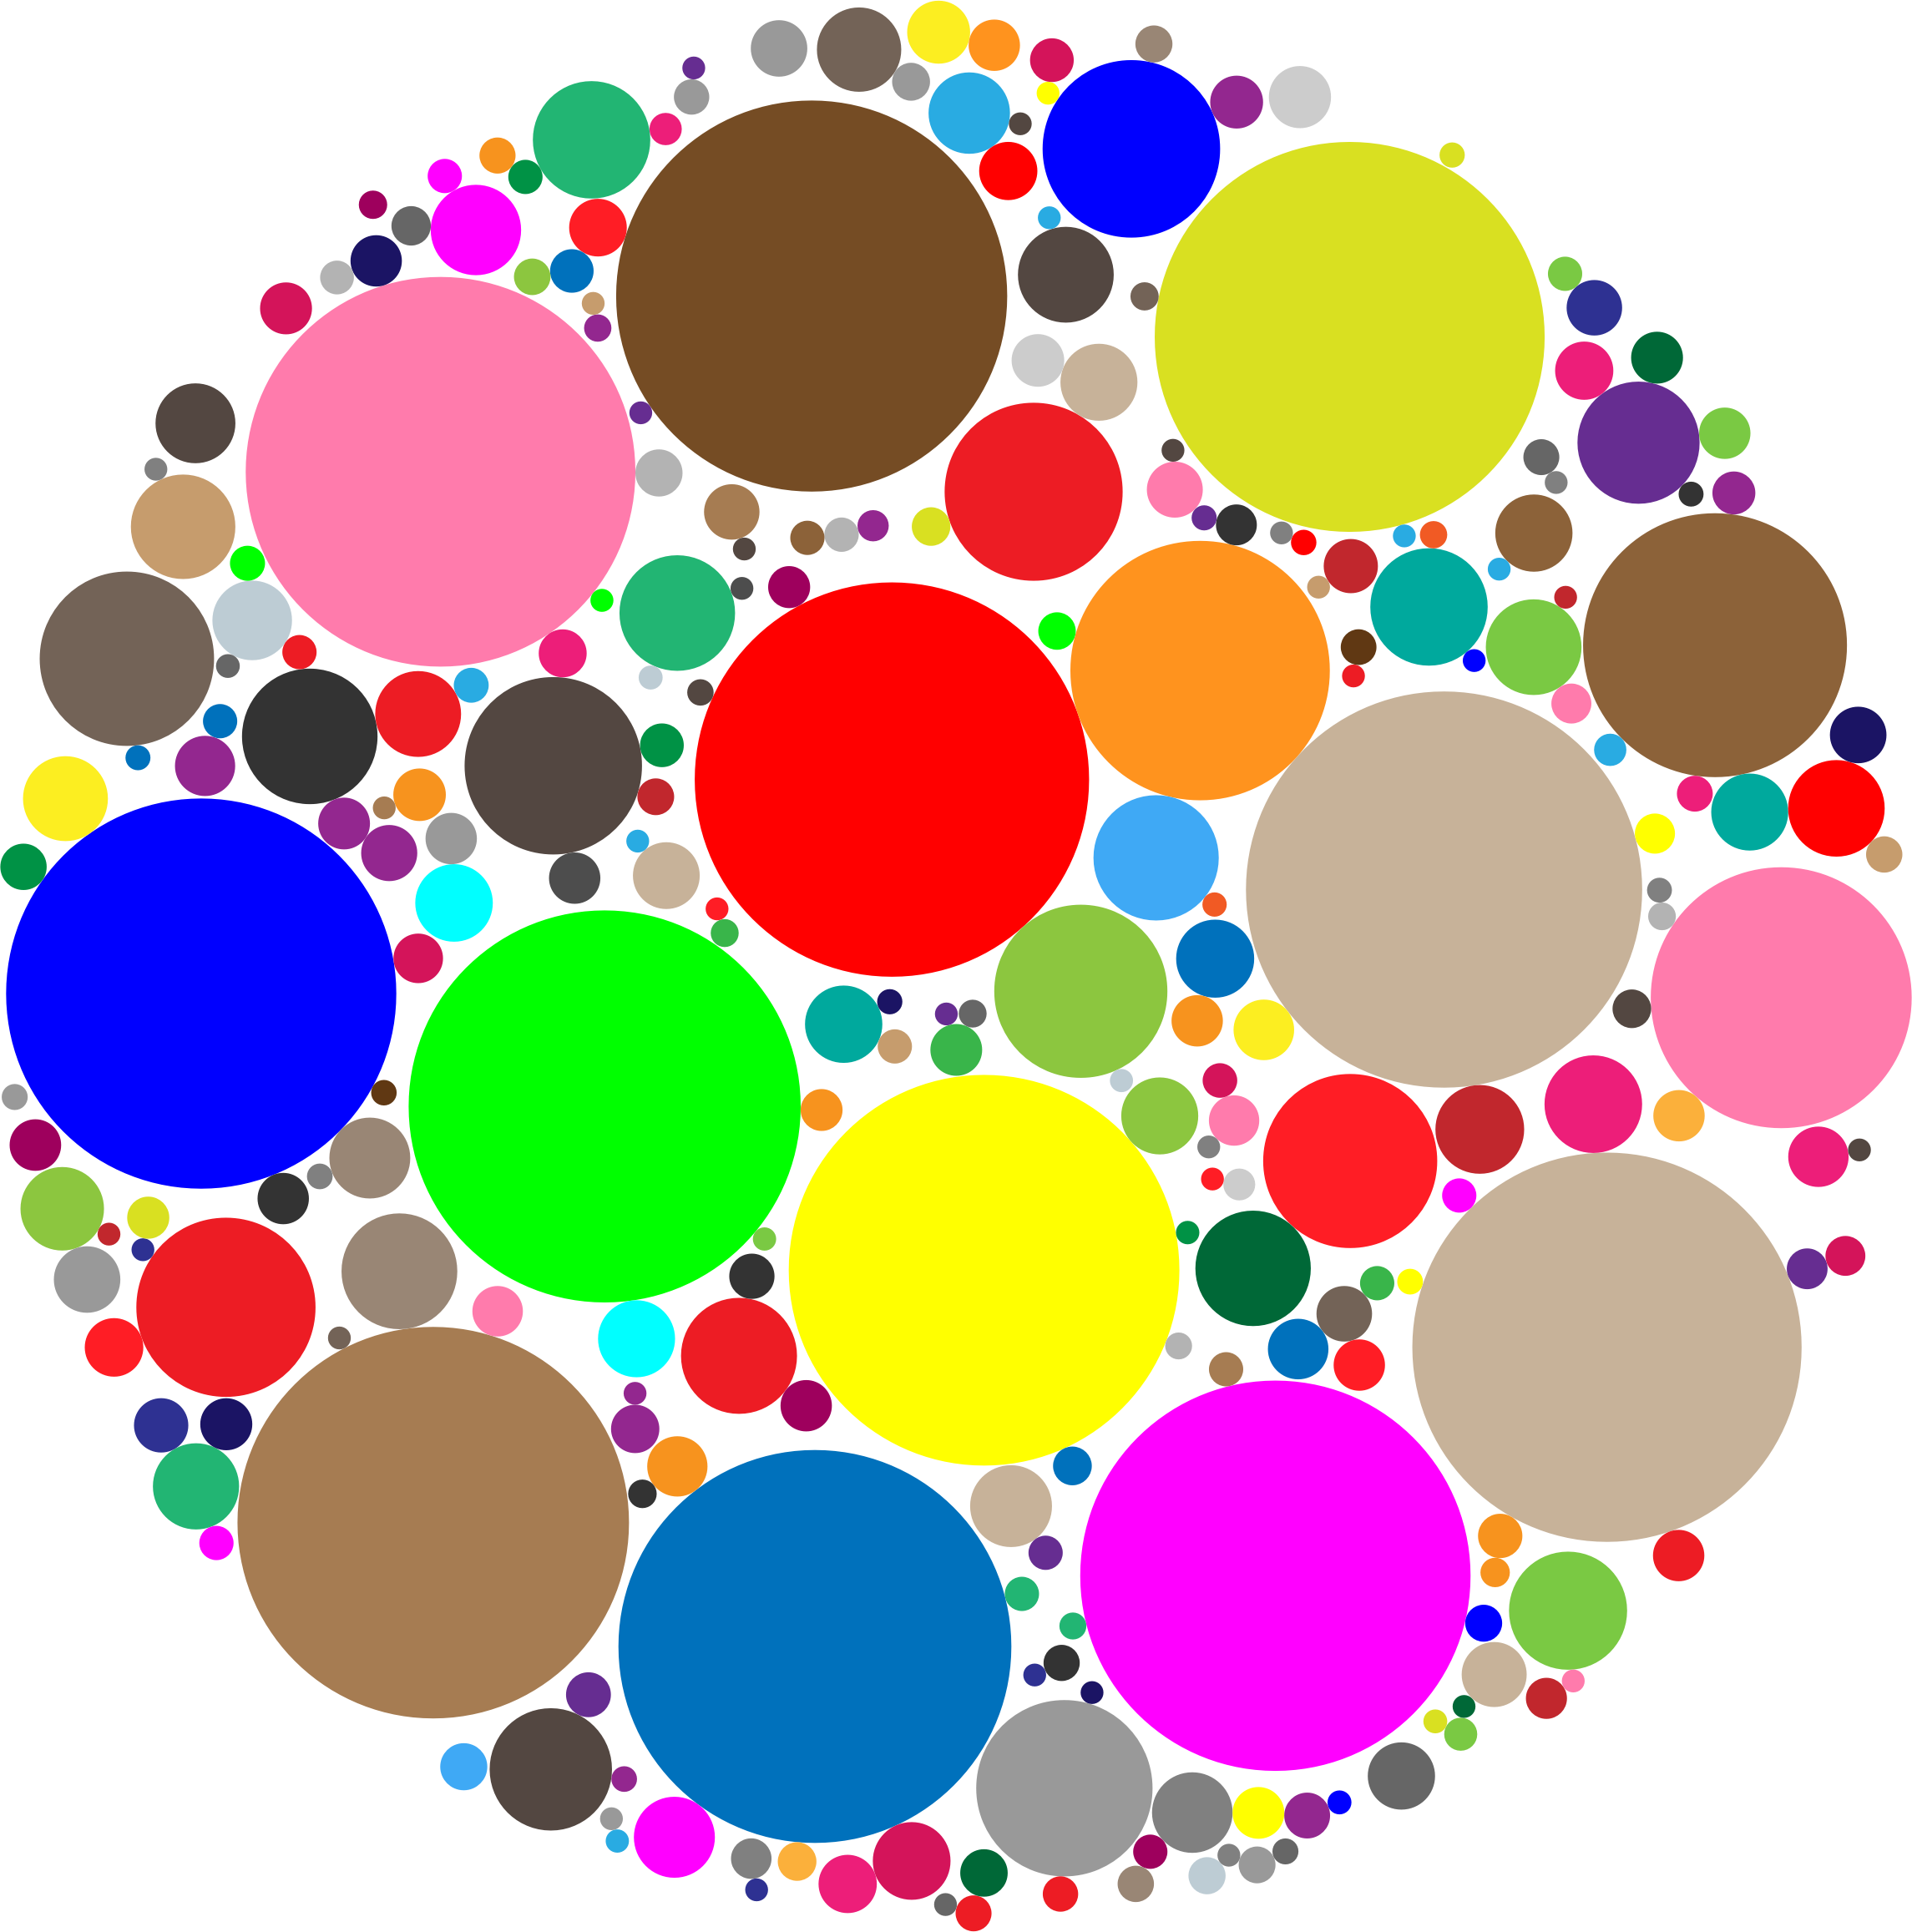 Clipart - Circles In Circle